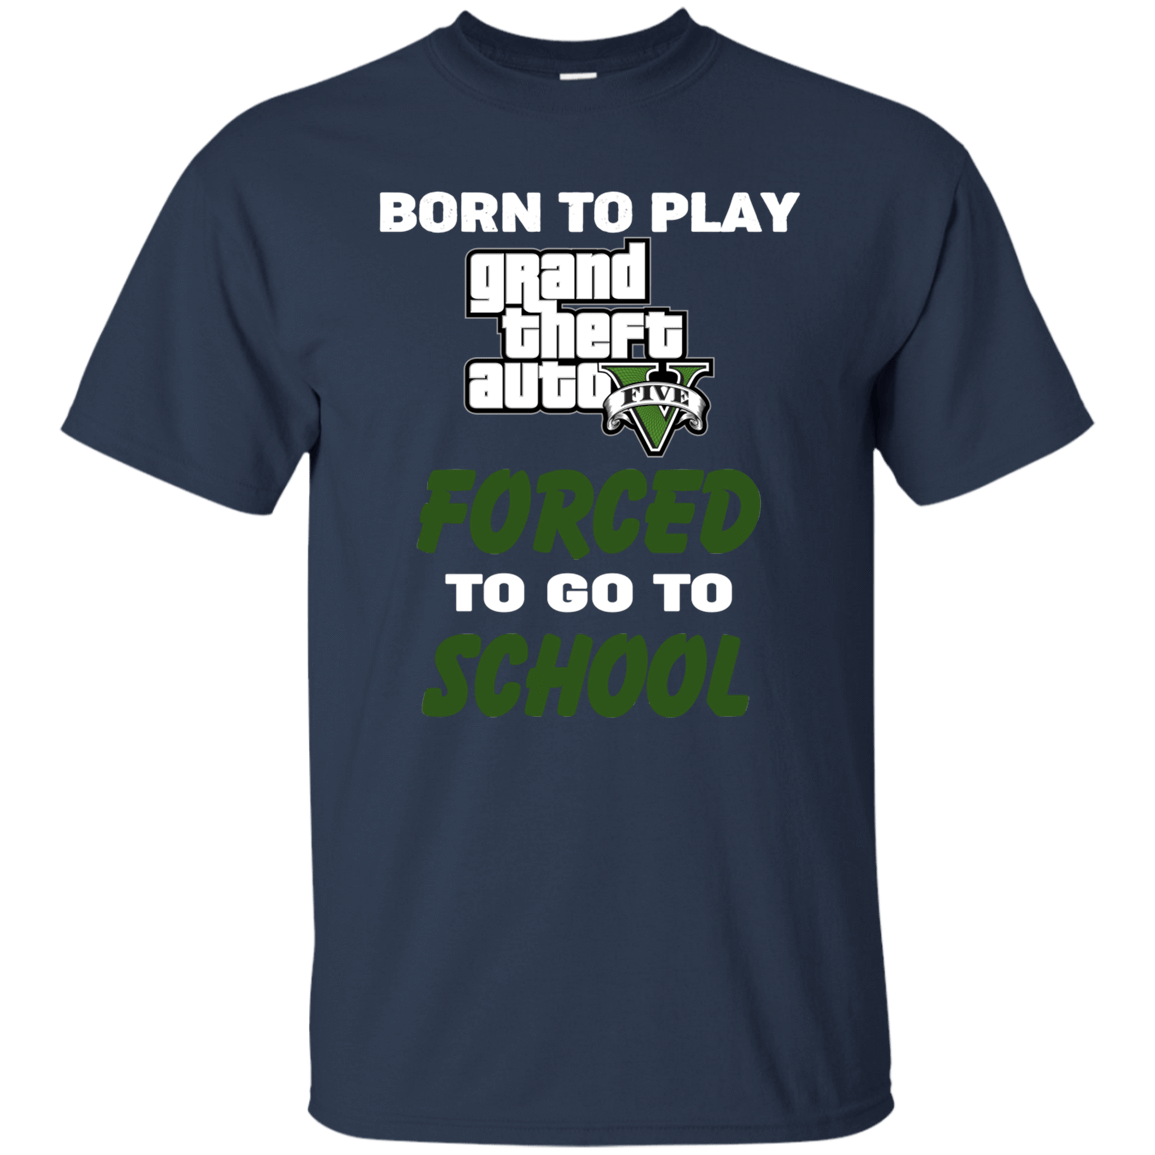 Born To Play Grand Theft Auto Forced To Go To School 55-314-74209585-10914 - Tee Ript